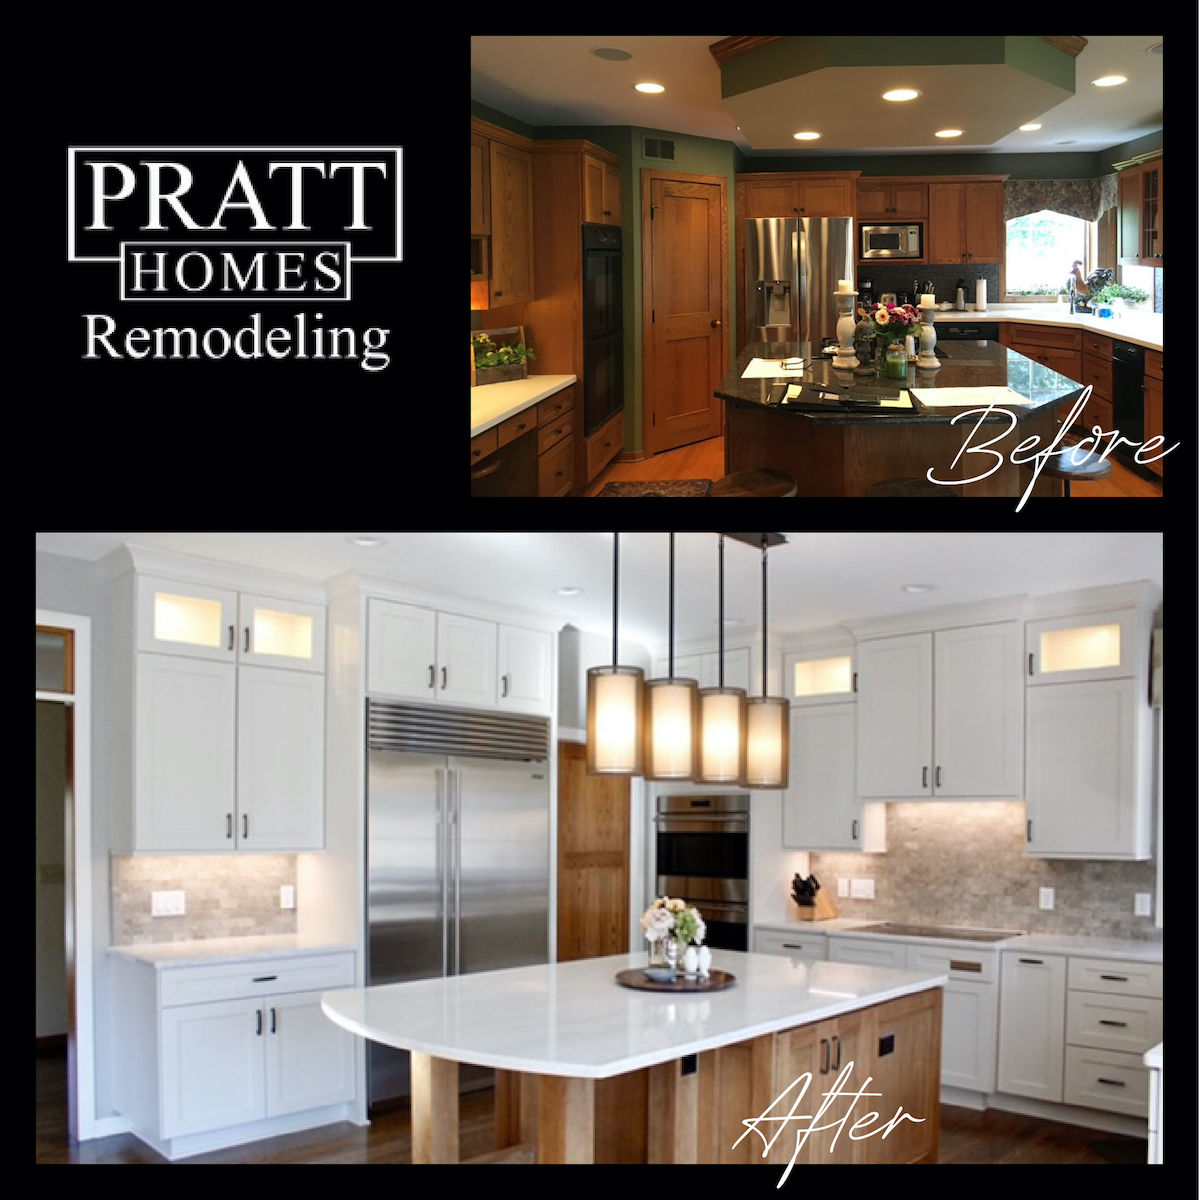 Before and After Kitchen Remodel in Afton MN